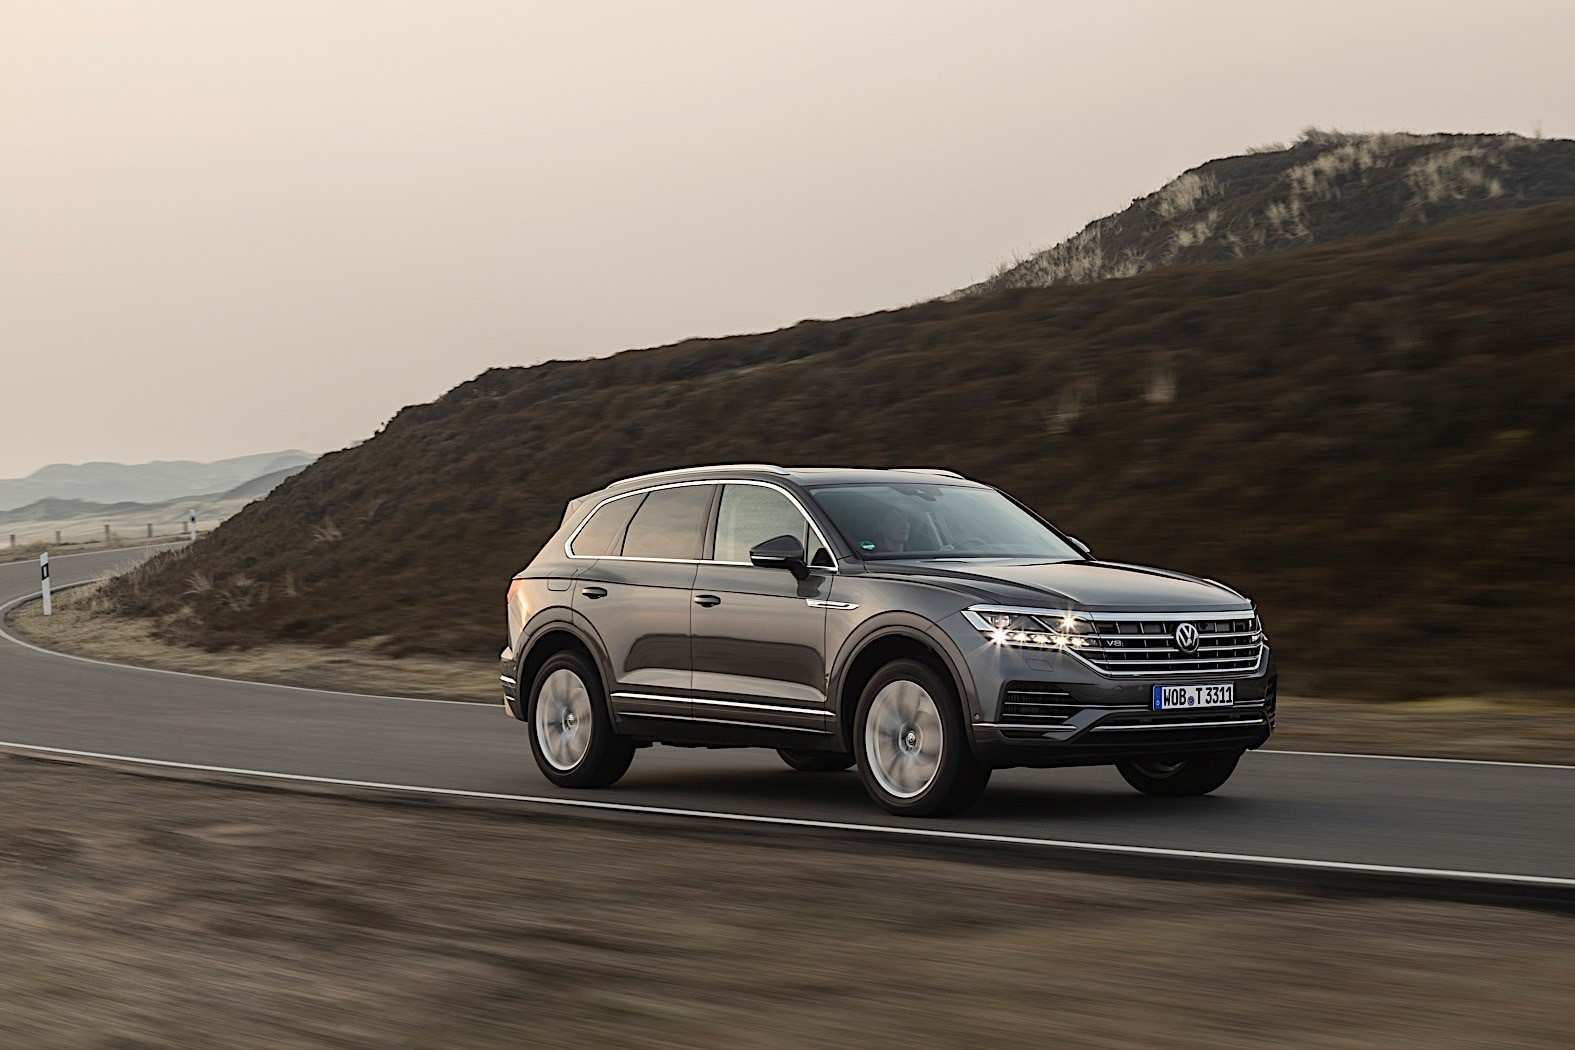 78 All New 2020 Volkswagen Touareg Prices